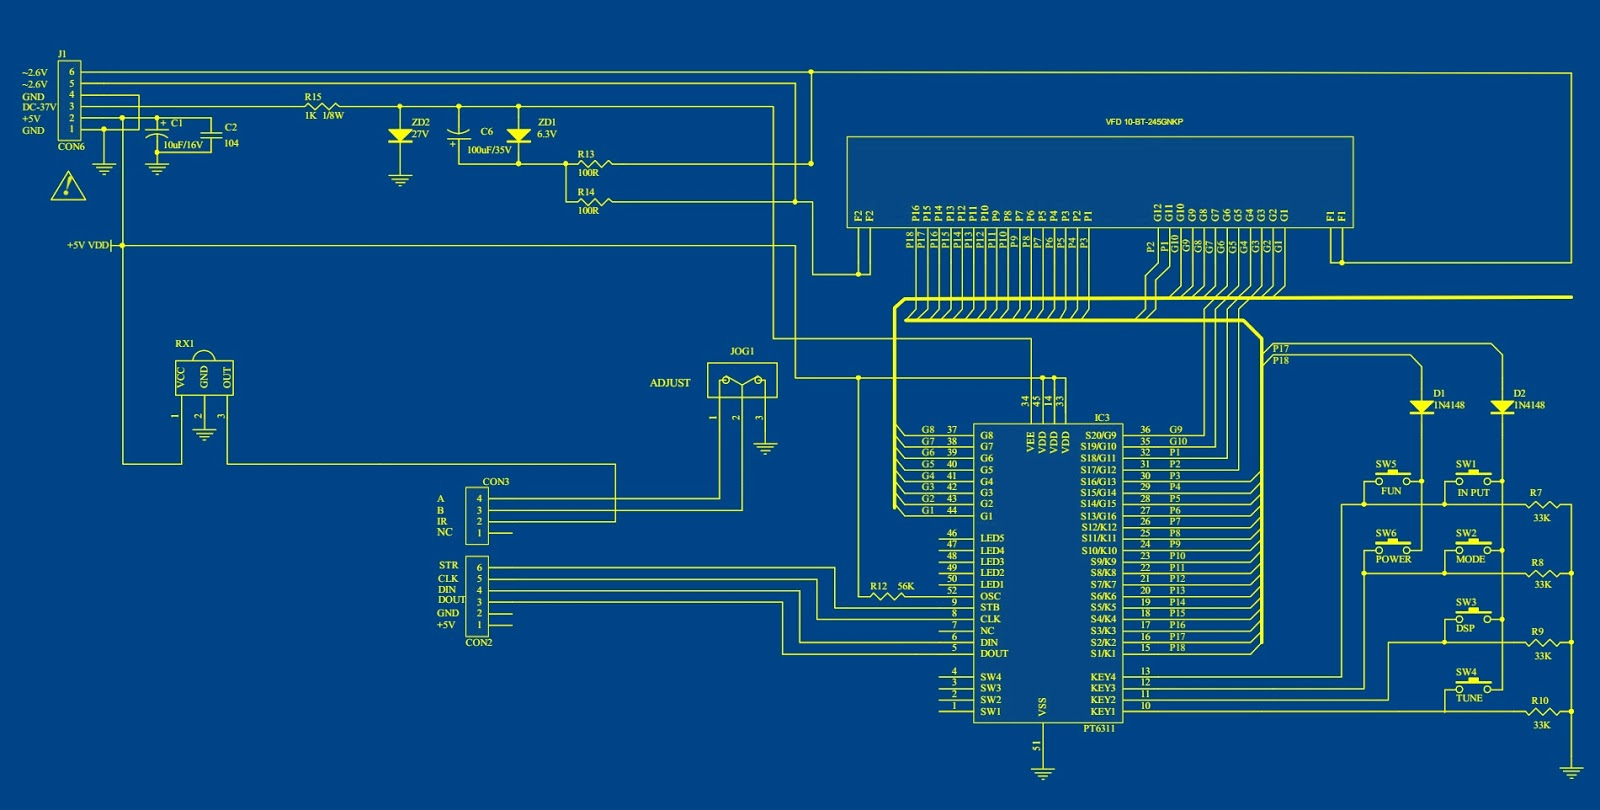 Electronic Circuit Schematic Diagrams Wiring 2019 Drawing Software Microlab Ah500 Hts Diagram Cd4052 M62446 Electronics Free Download